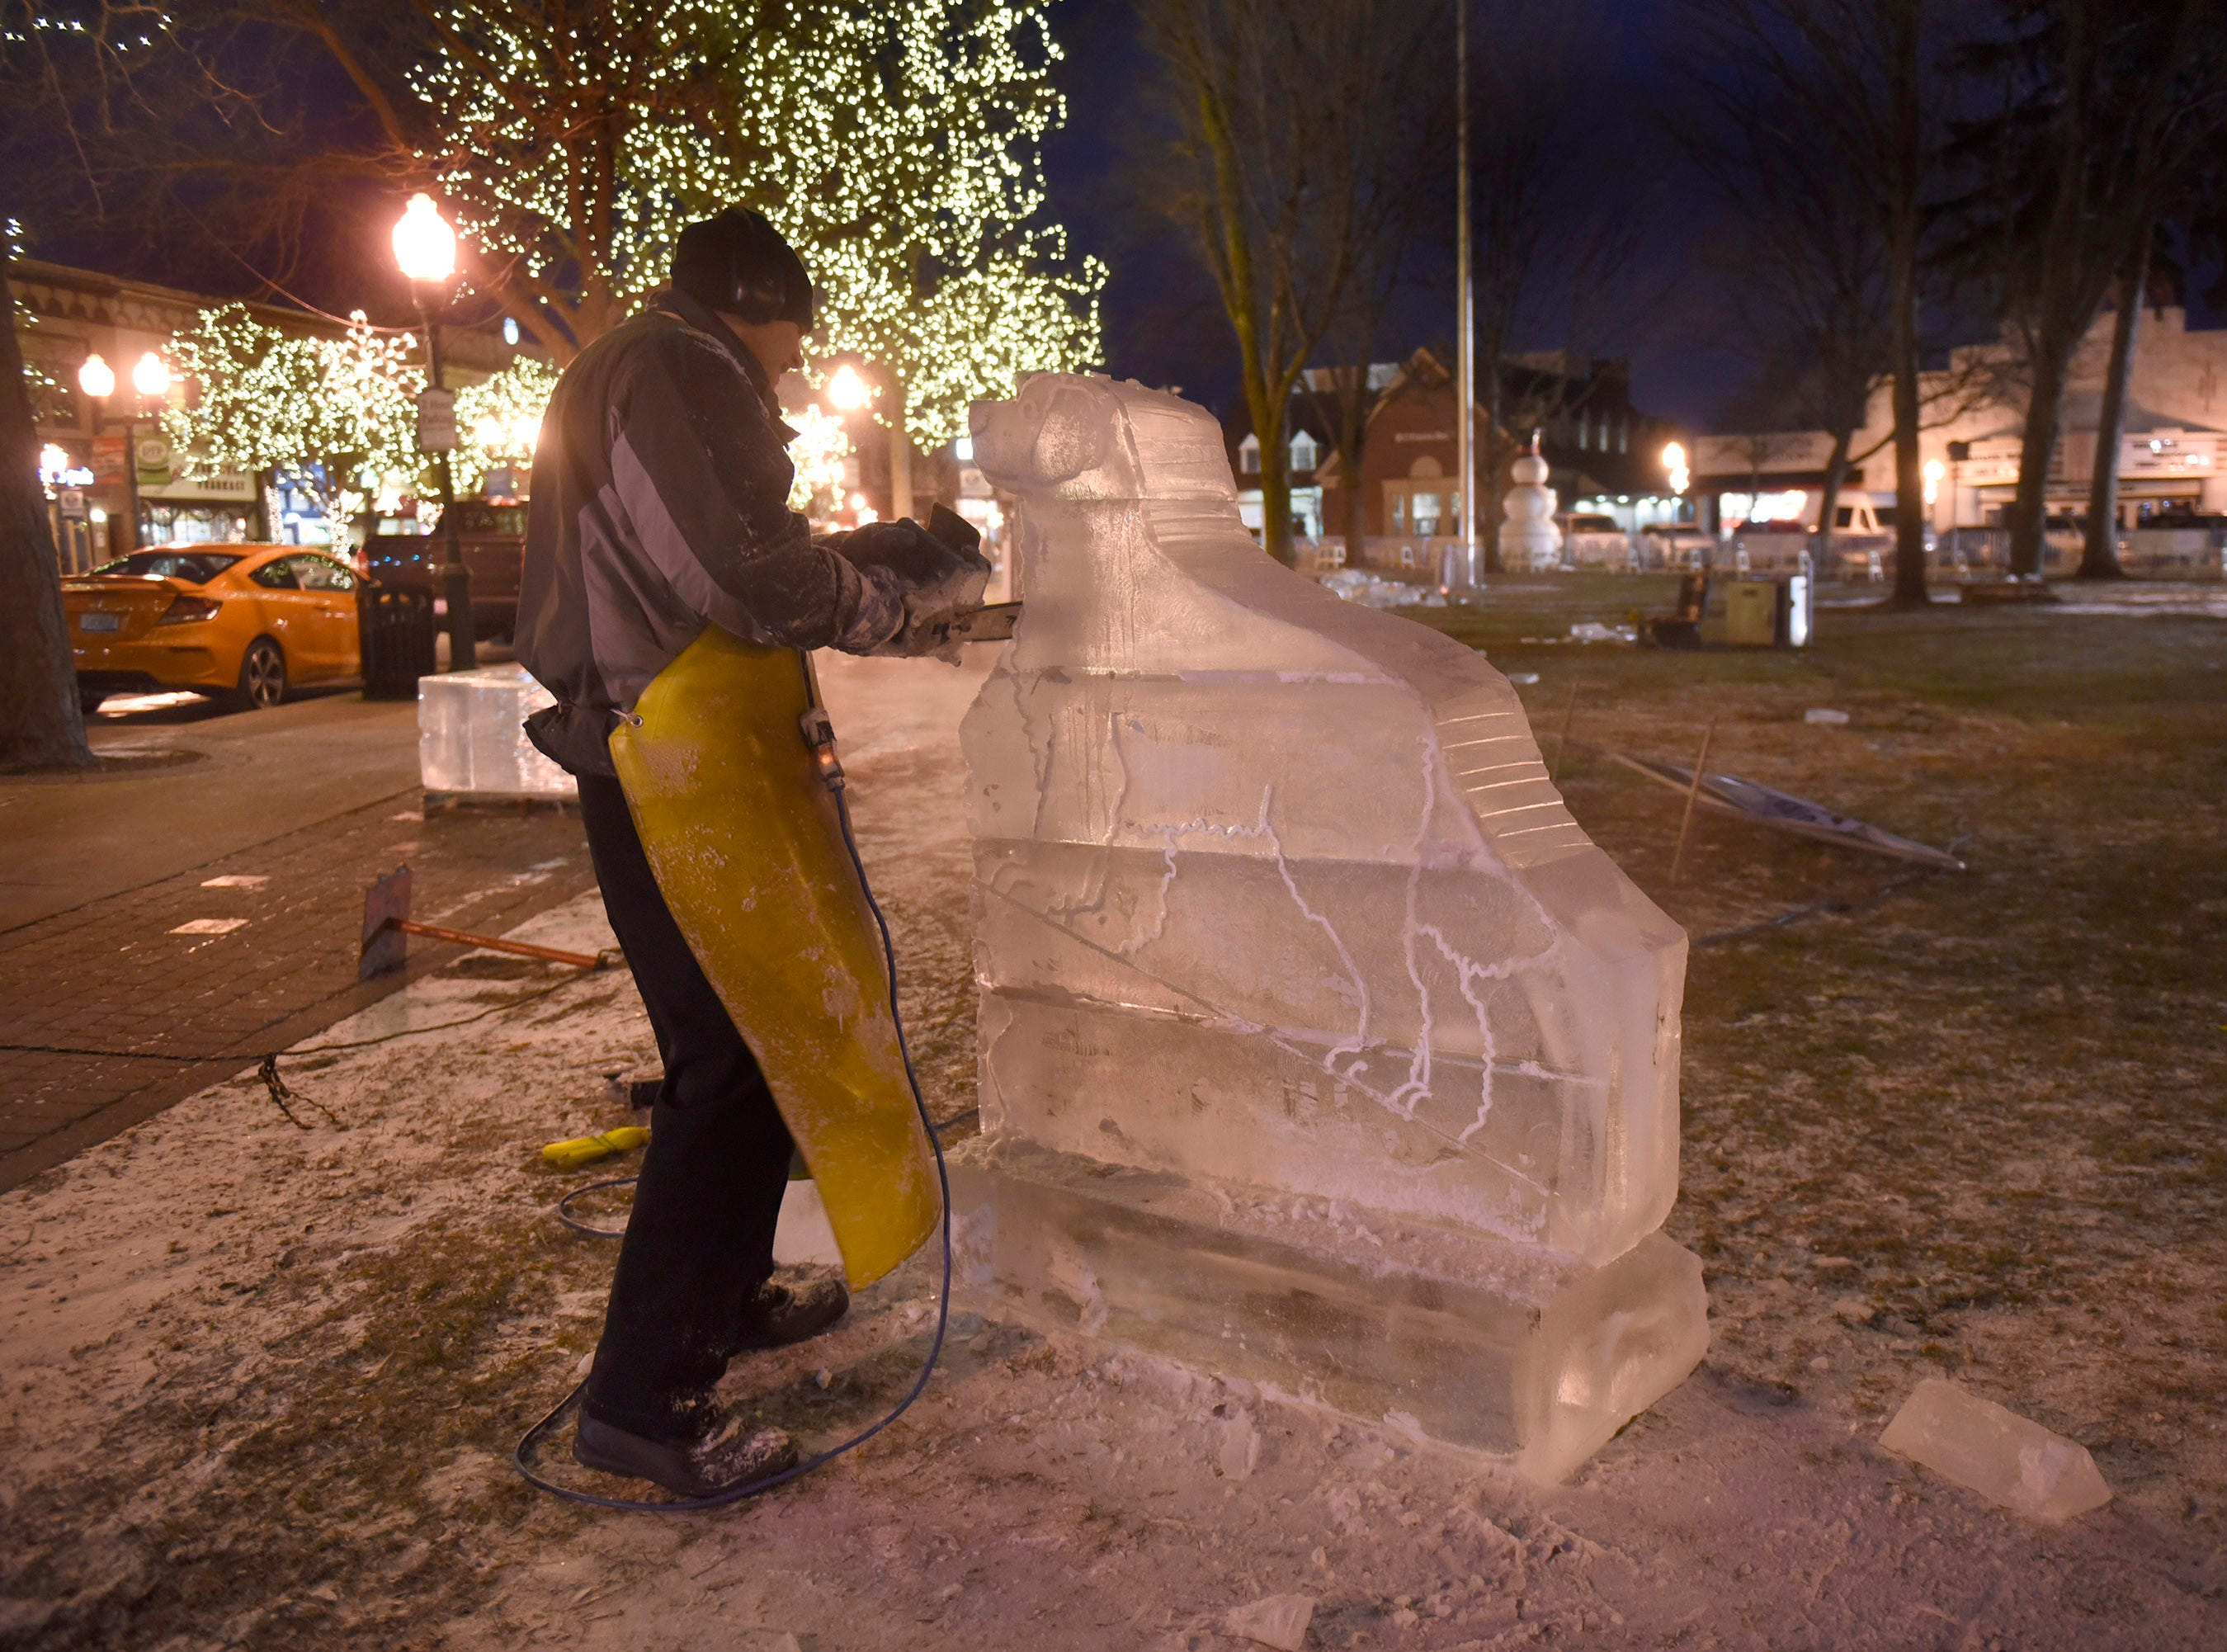 Clinton Rich works on a piece Wednesday evening in Kellogg Park that will become part of the Plymouth Ice Festival that runs Jan. 11-13.